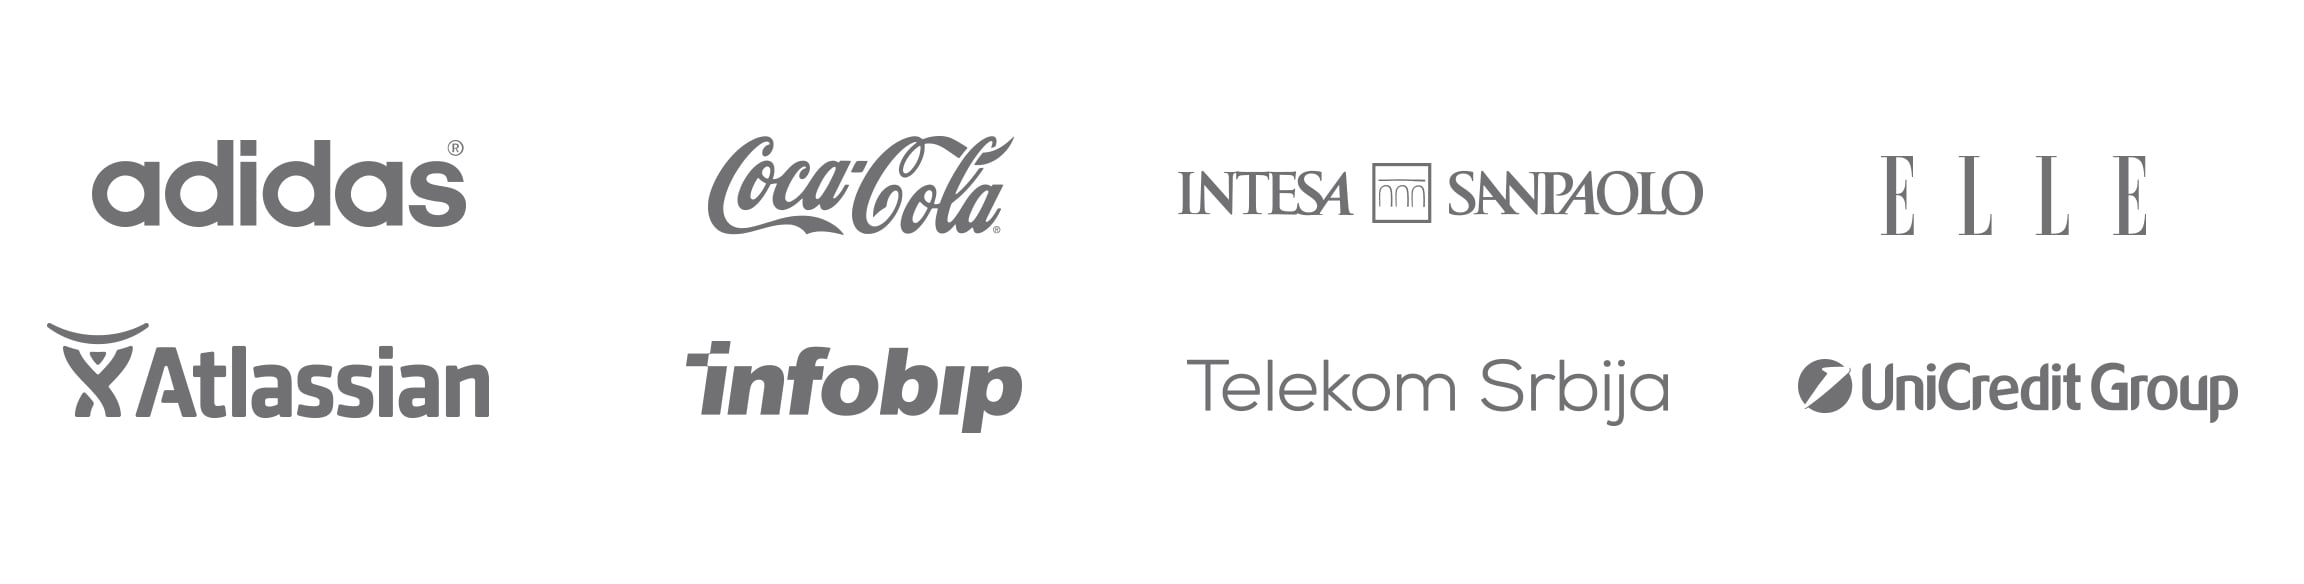 Some of my notable clients: Adidas, Coca-cola, Intesa, Elle, Atlassian, Infobip, Telekom, UniCredit.